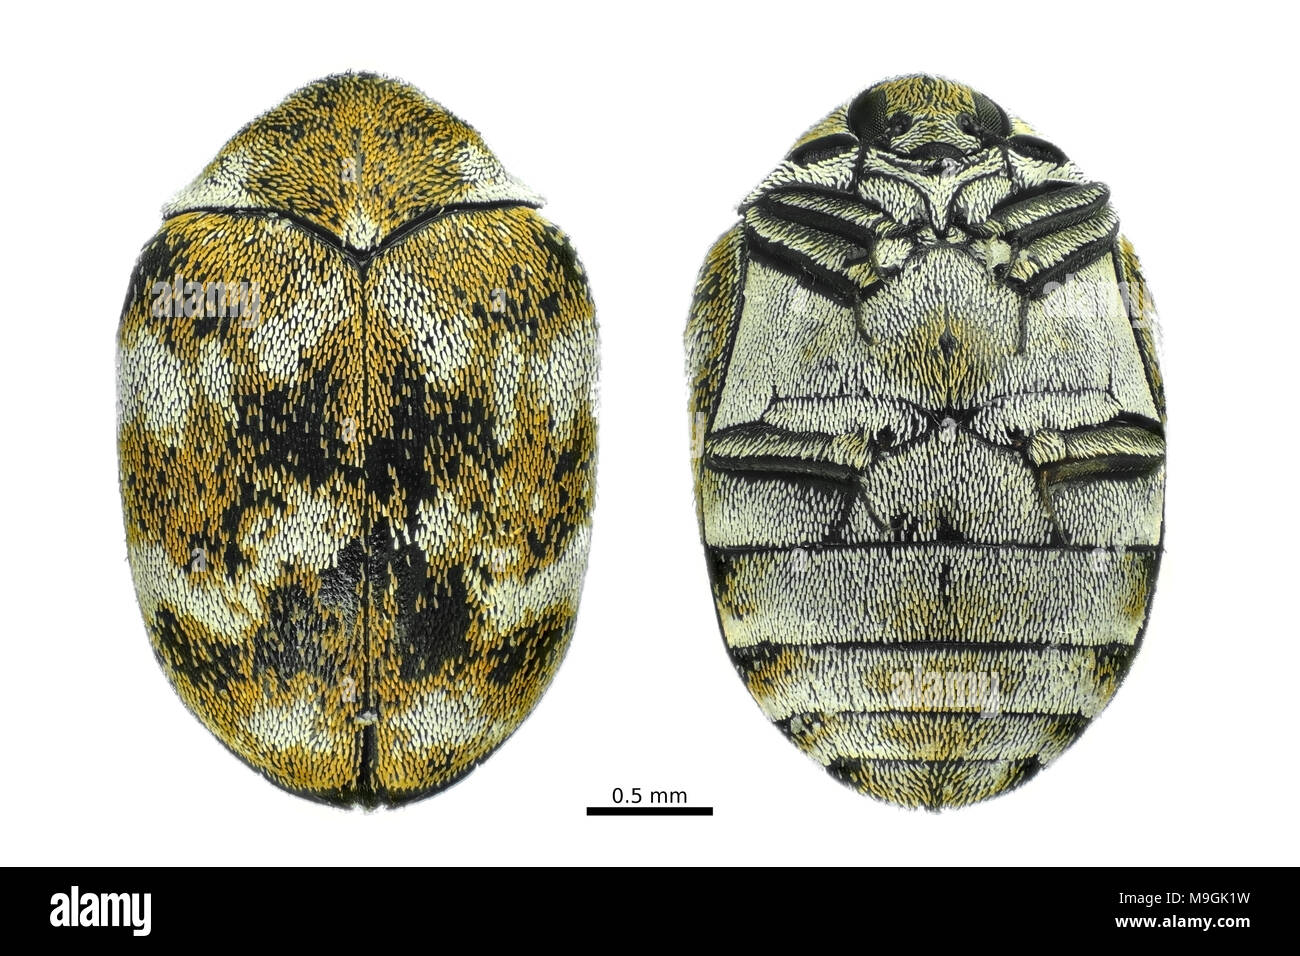 Light micrograph of a varied carpet beetle (Anthrenus verbasci), dorsal and ventral views isolated on white background Stock Photo